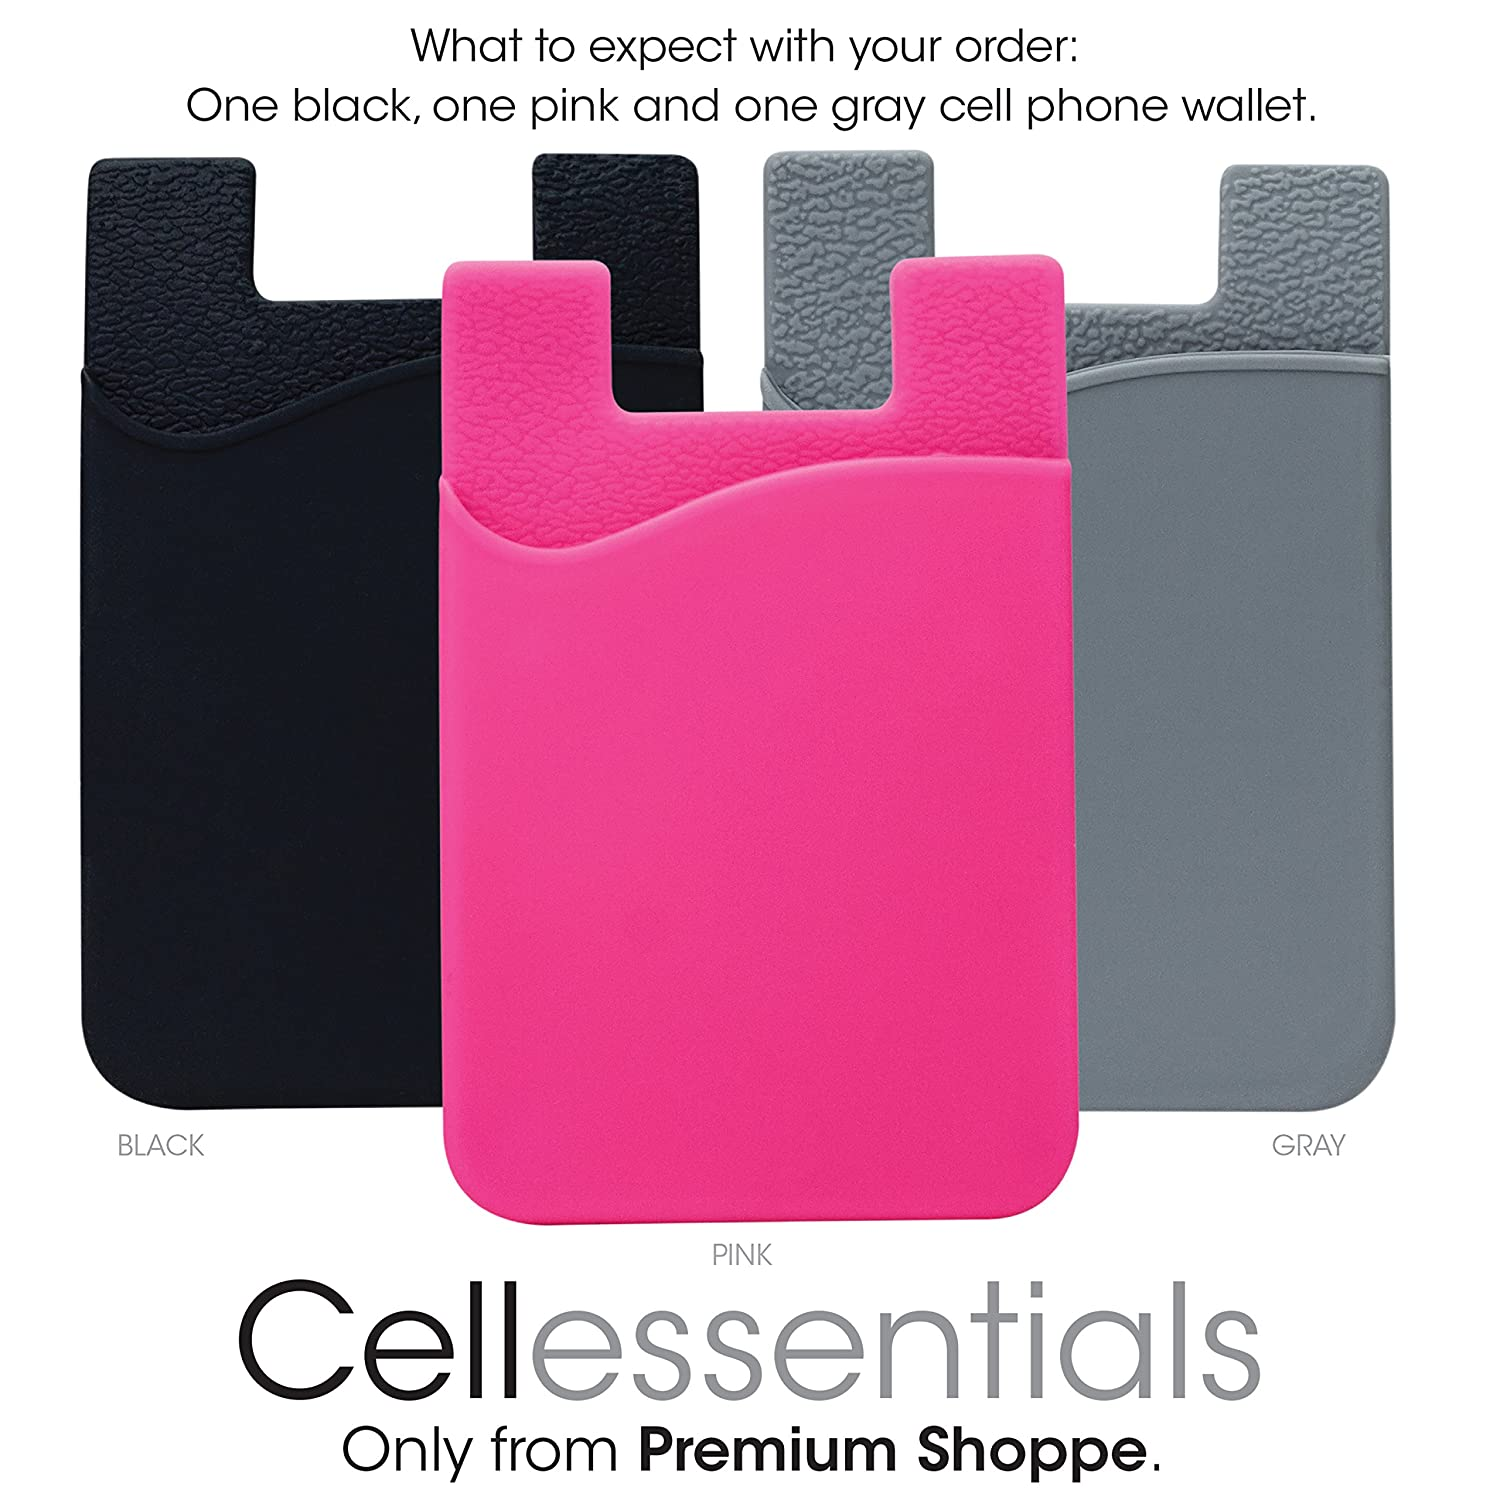 cell phone wallet by cellessentials for credit card